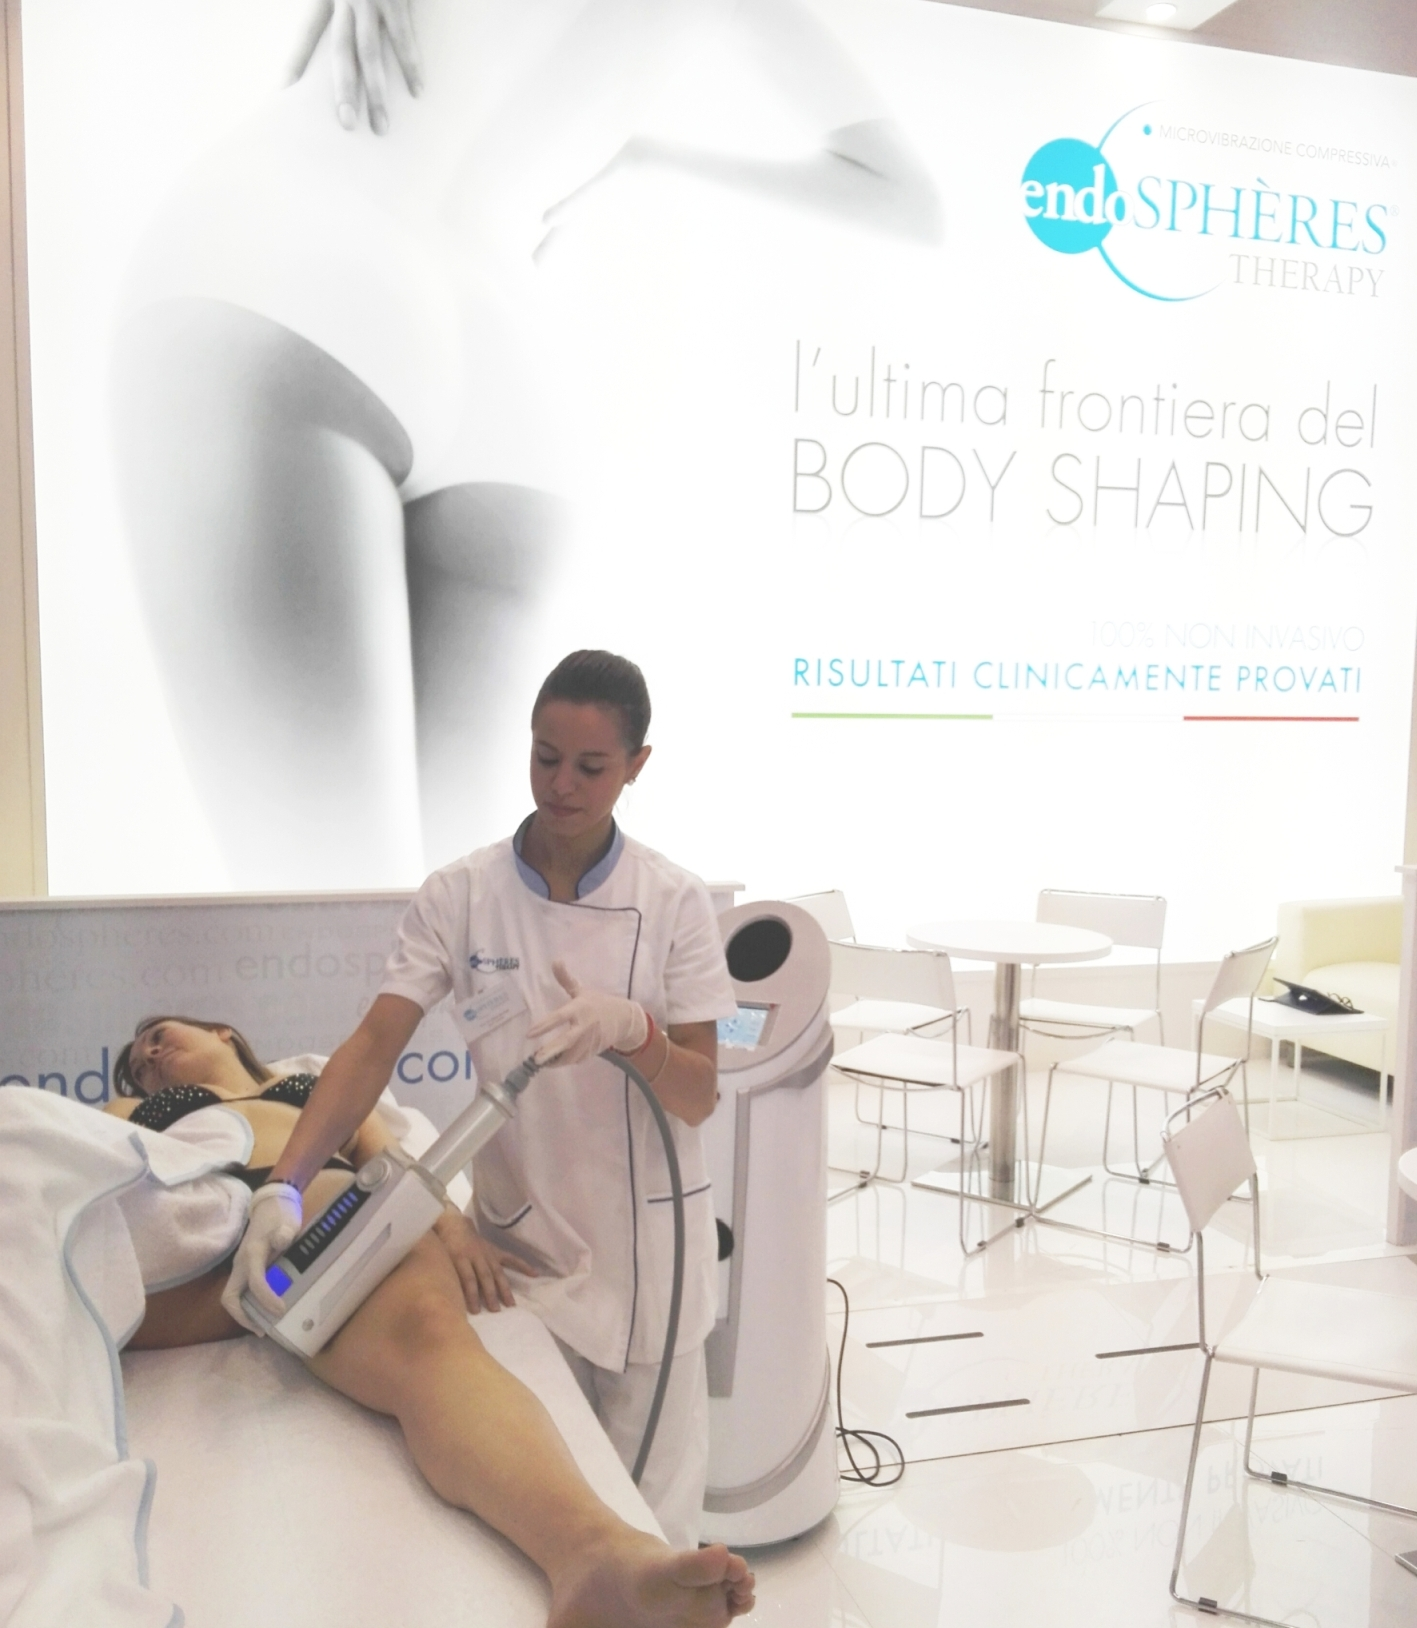 MapCommunication_EndospheresTherapy_Stand-Cosmoprof3